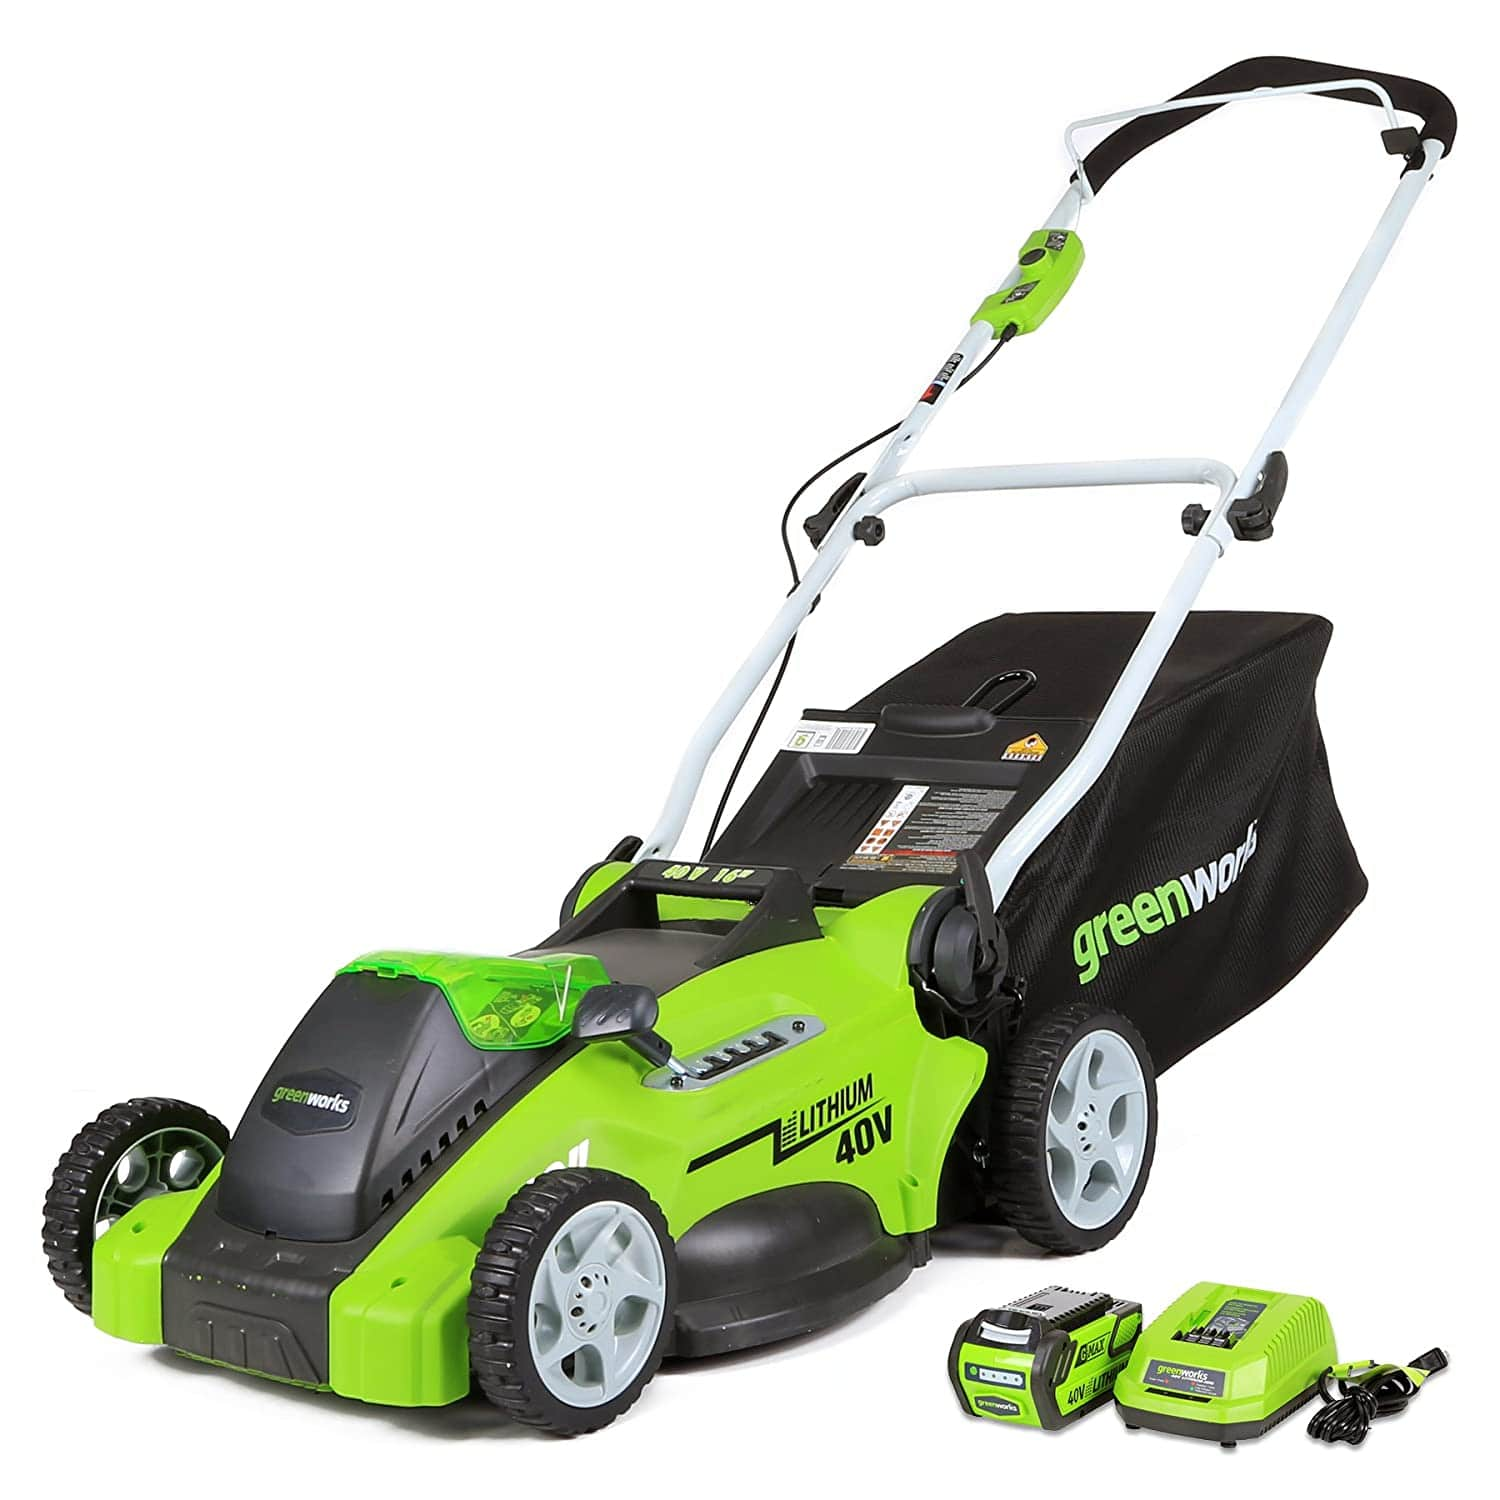 Greenworks 40V 20-Inch Cordless Twin Force Lawn Mower, 4Ah & 2Ah Batteries with Charger Included $279.4